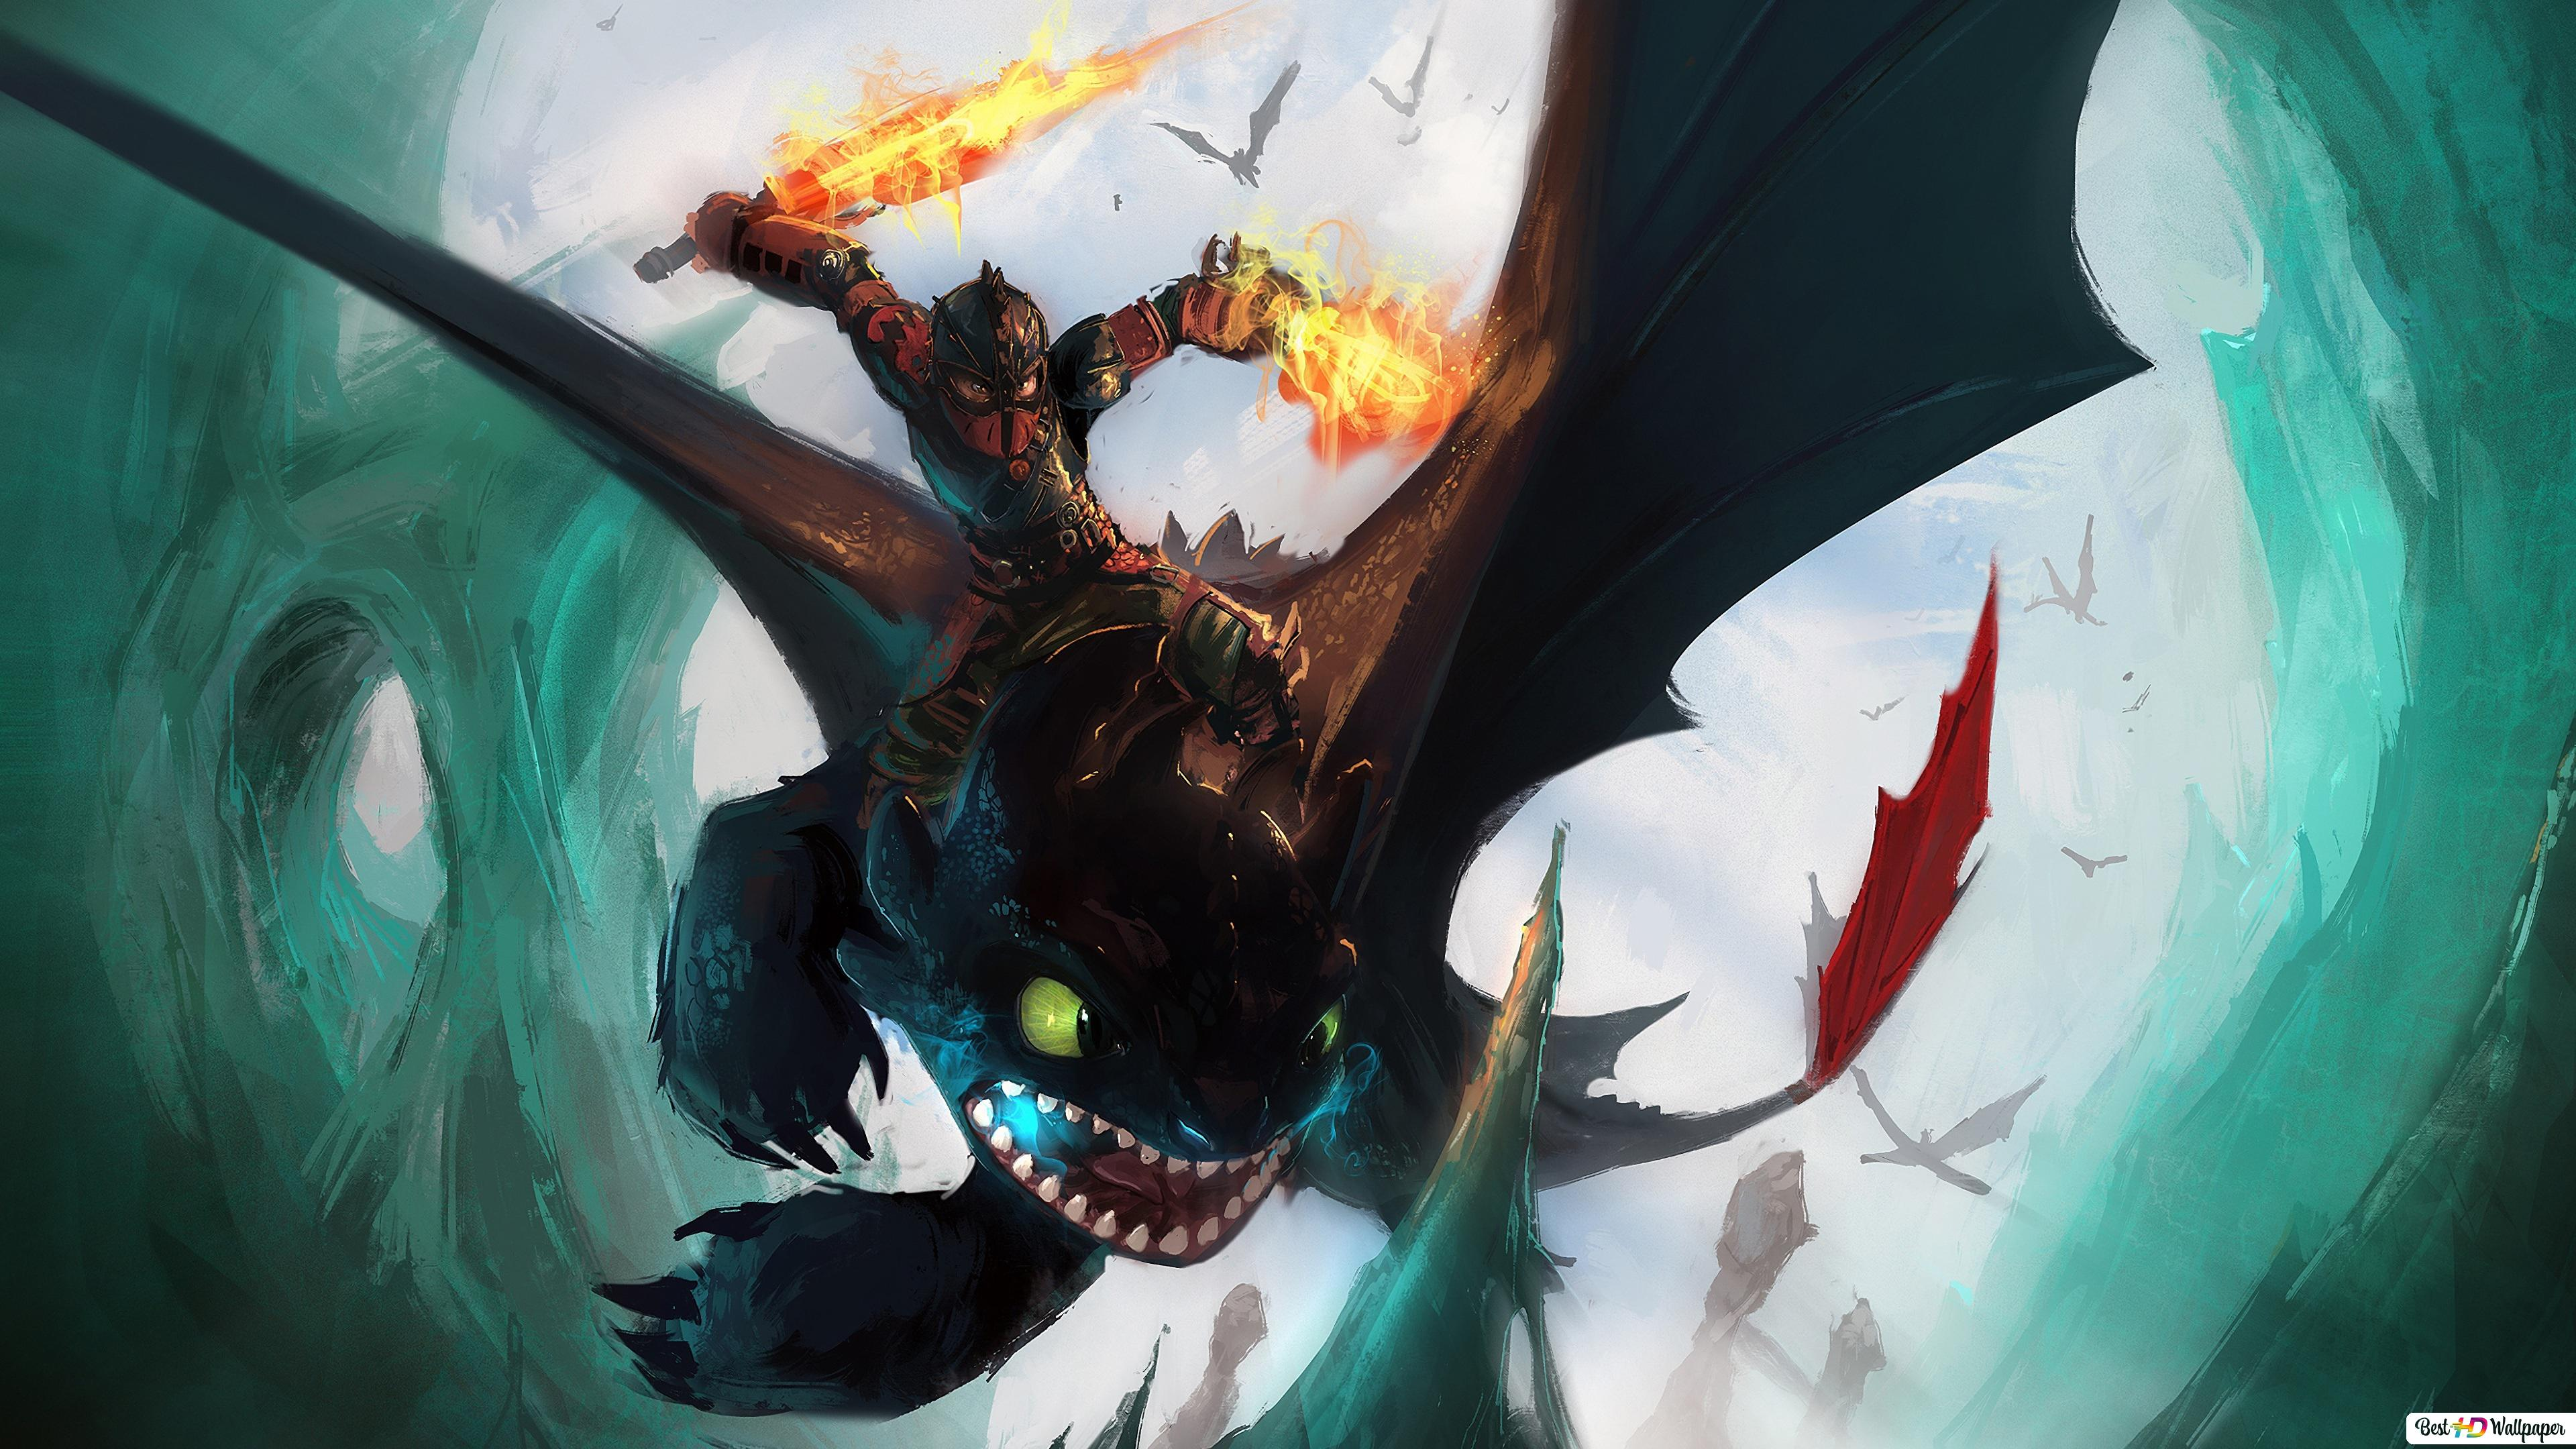 How To Train Your Dragon 2 Hd Wallpaper Download